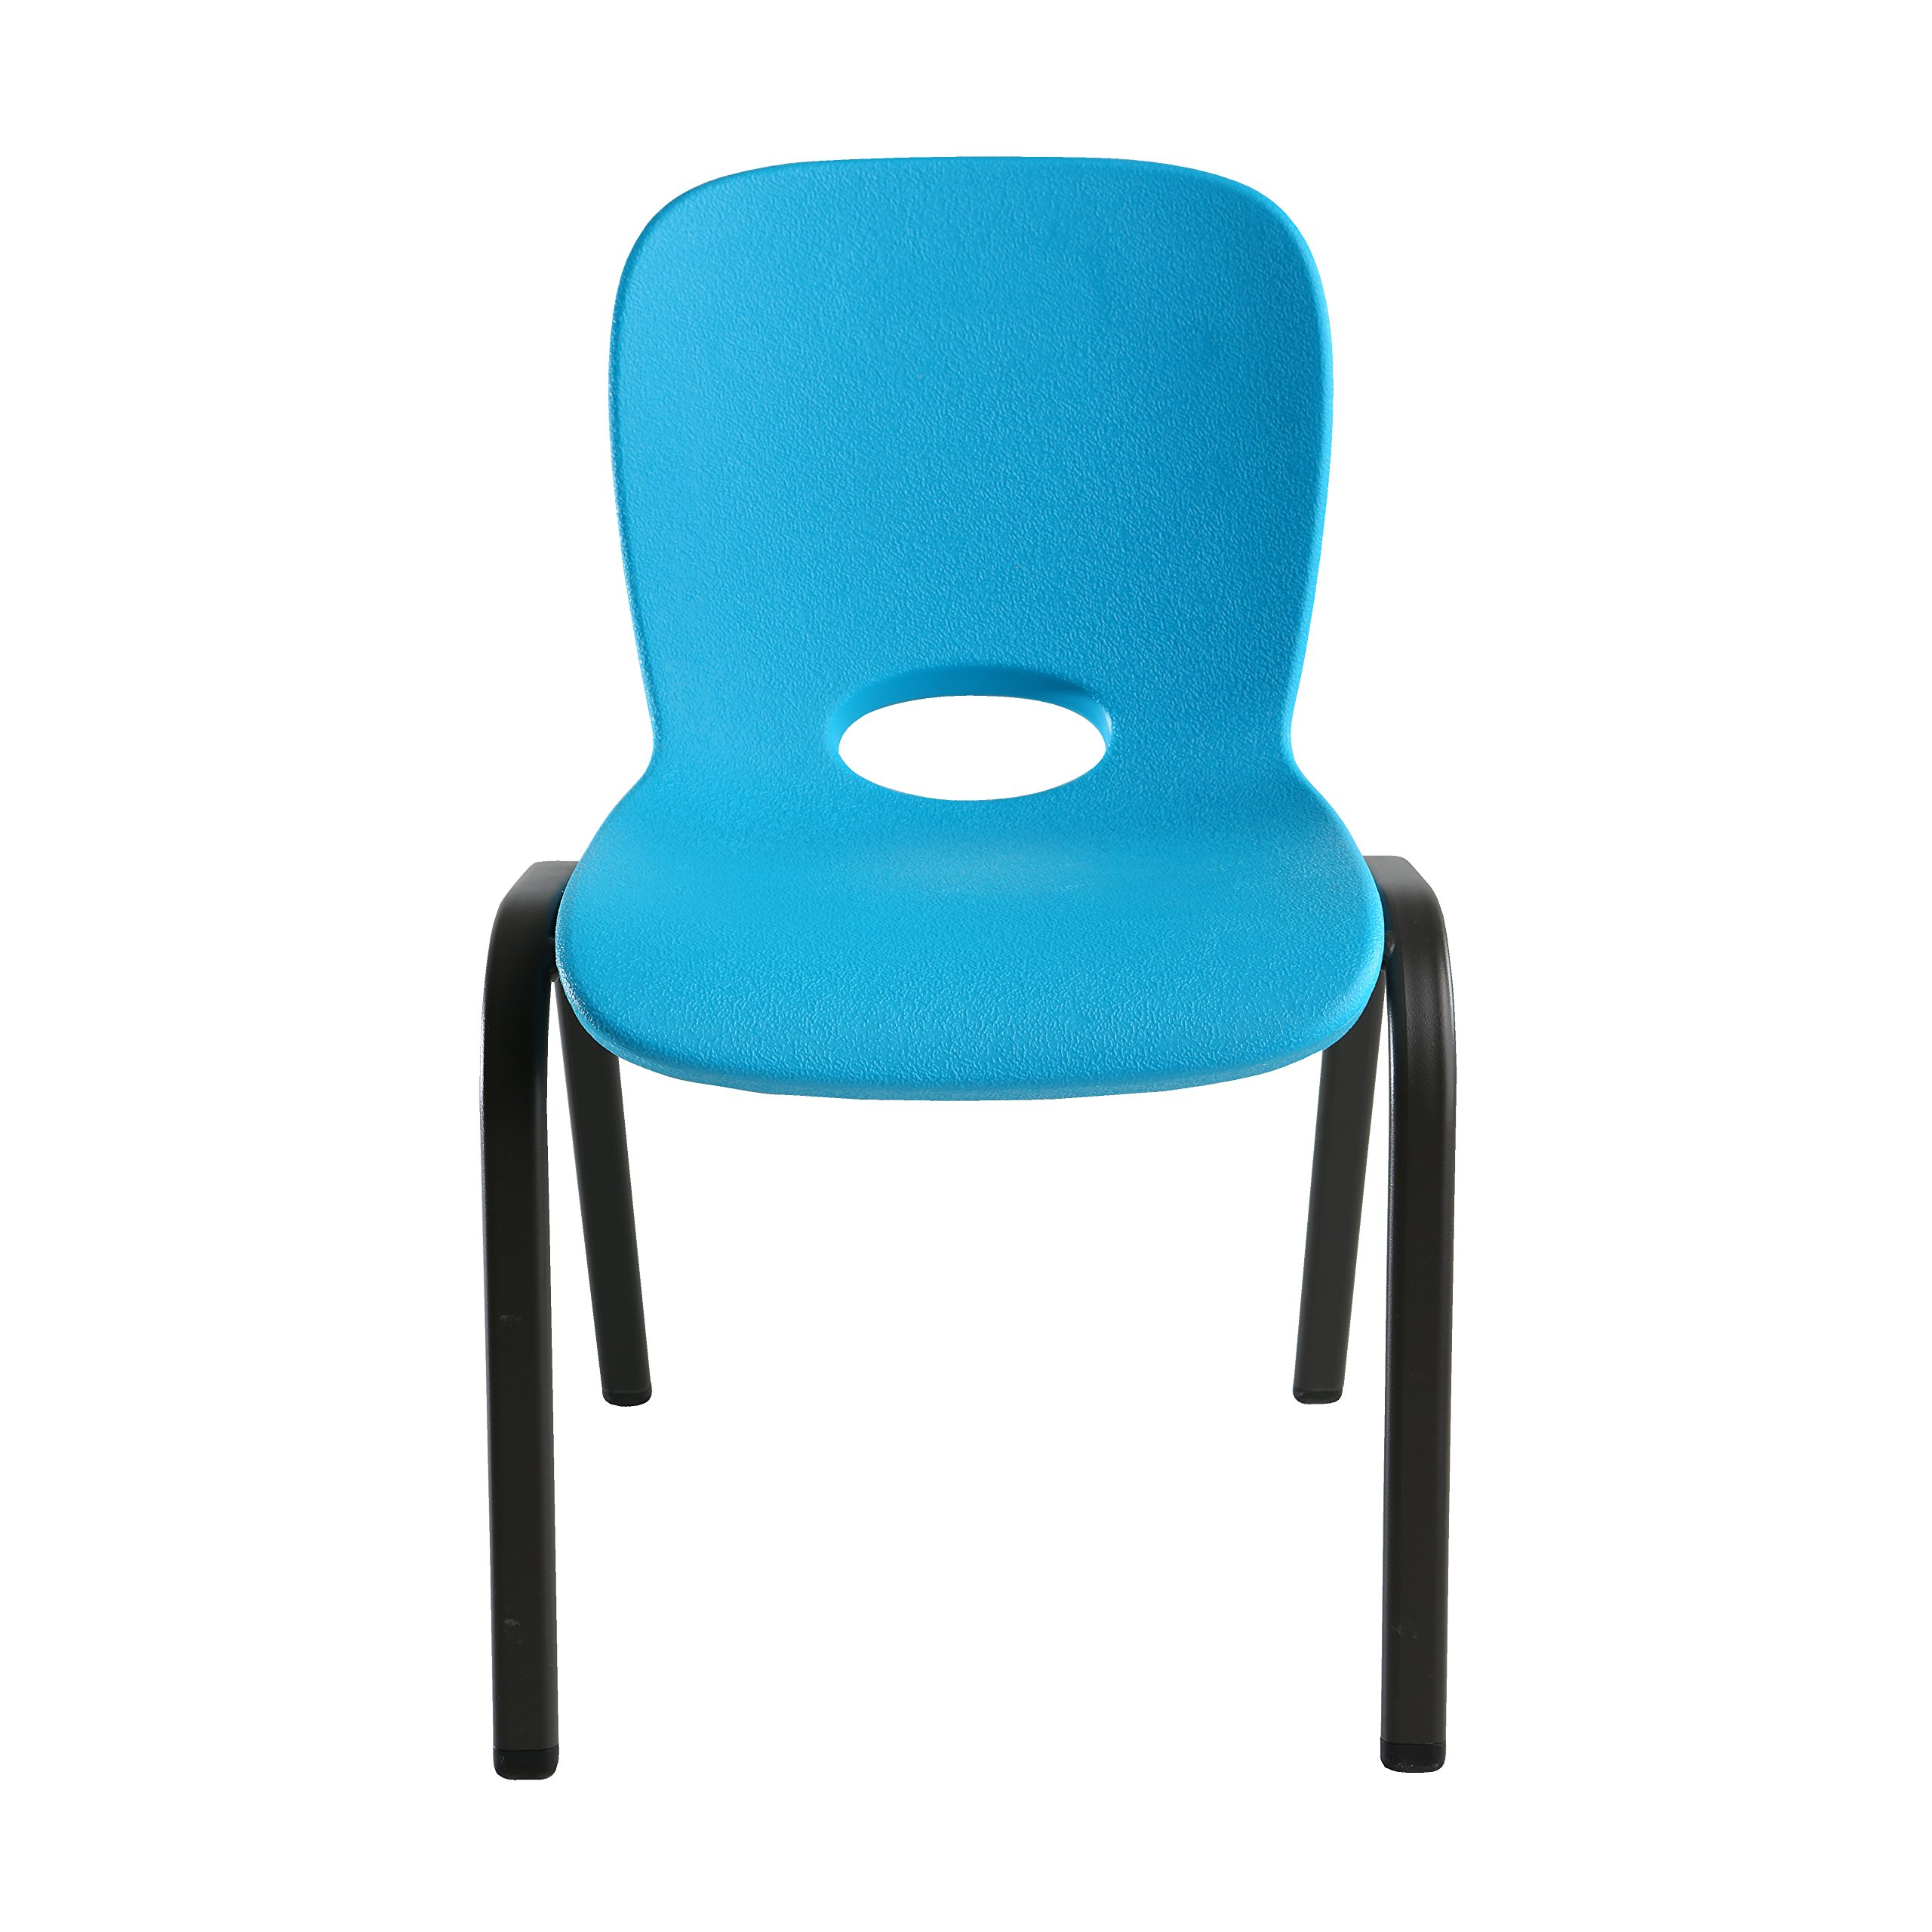 Lifetime 80472 Kids Stacking Chair (4 Pack), Glacier Blue by Lifetime